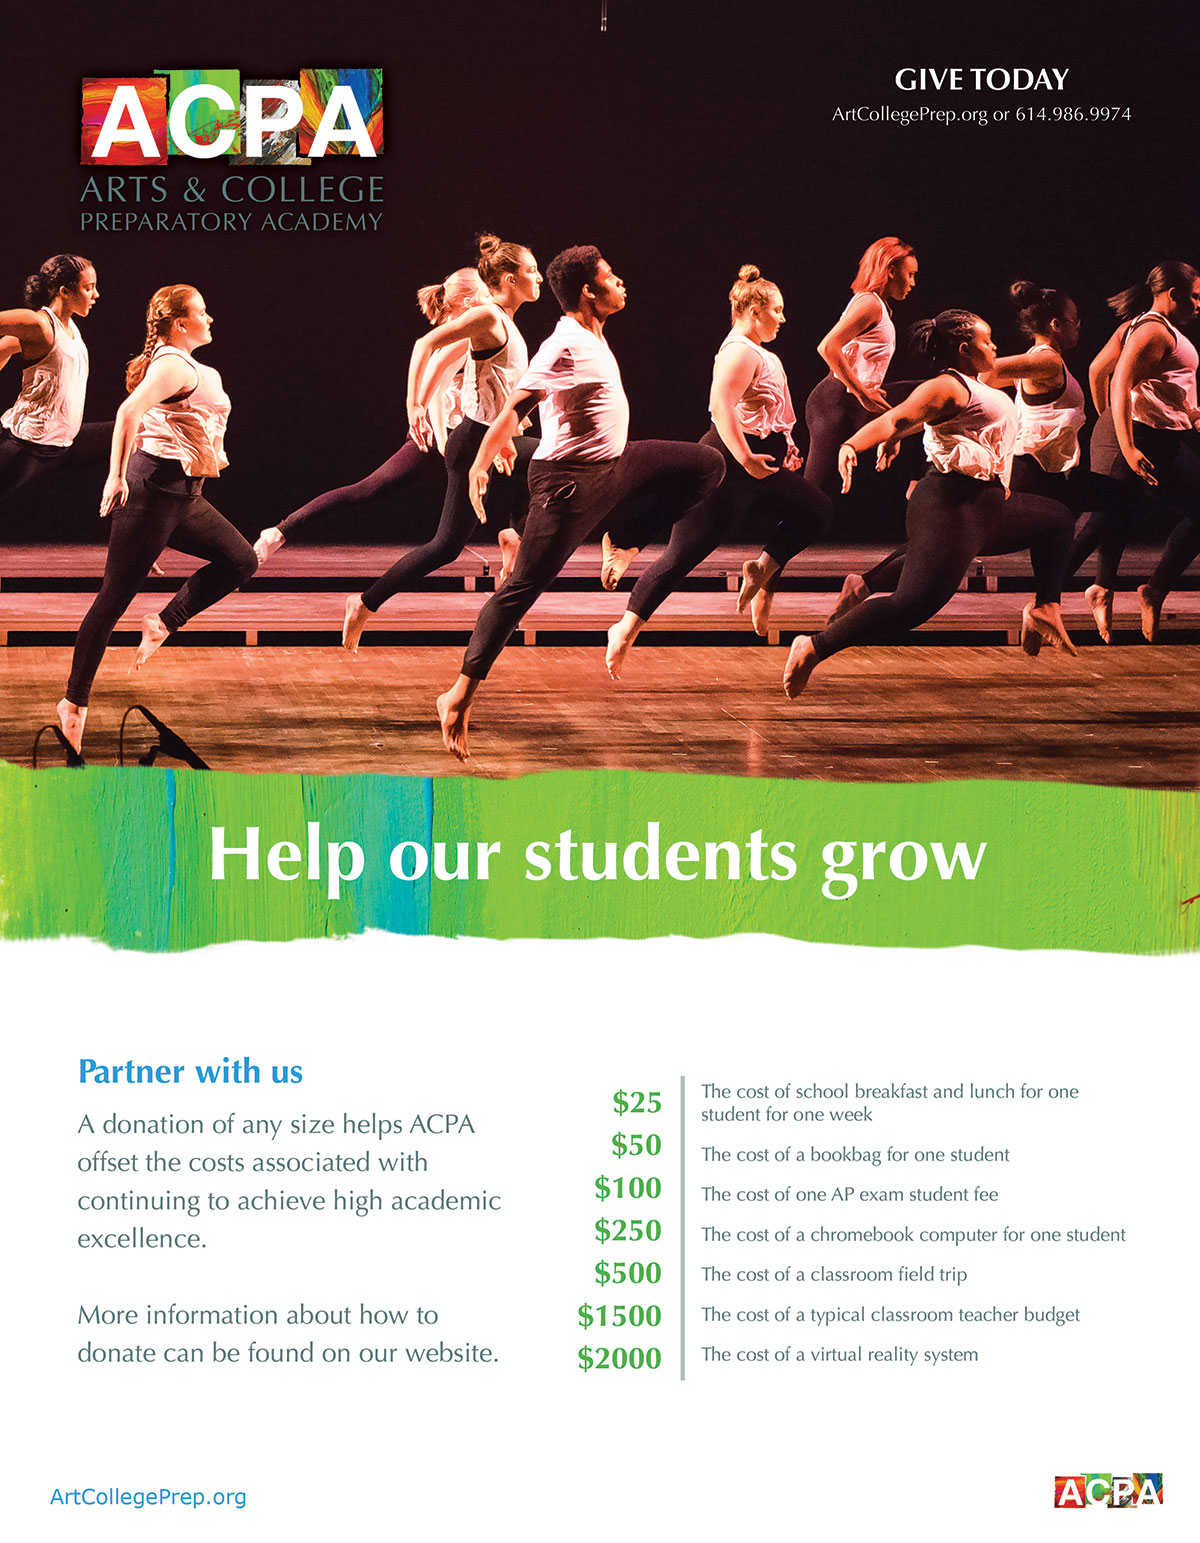 ACPA high school giving campaign flyer design